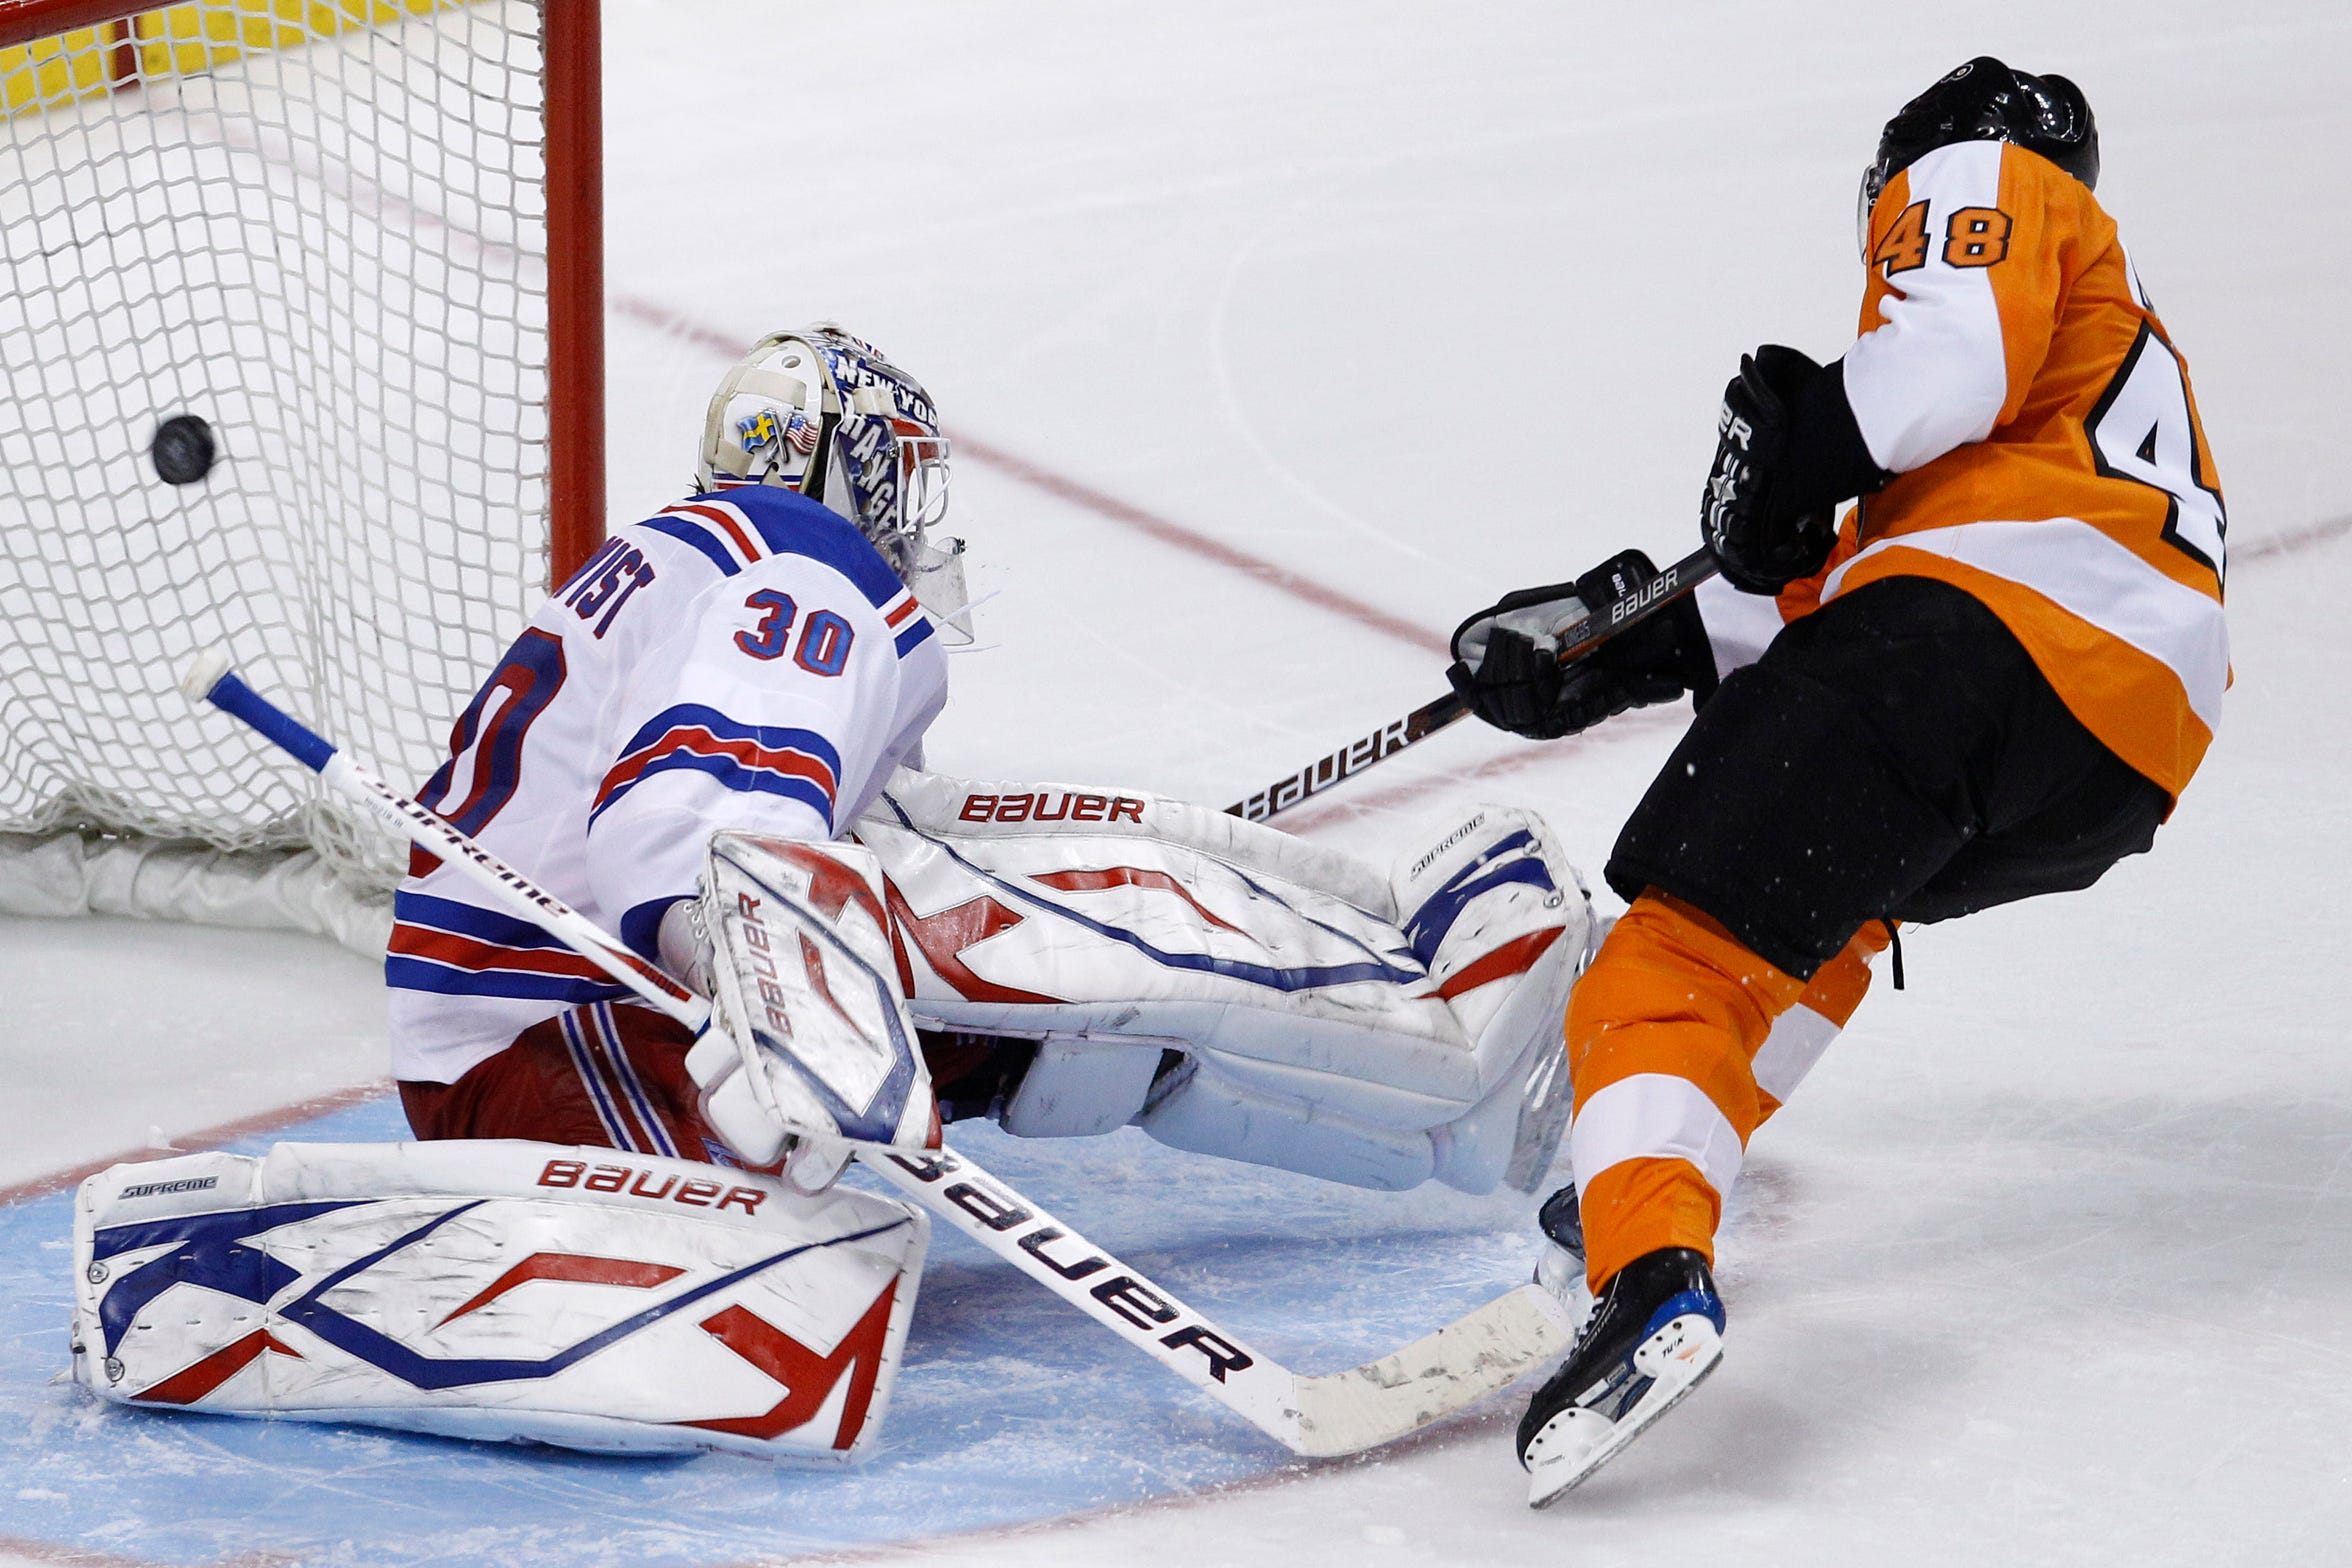 Danny Briere was the first to go in the shootout and beat Henrik Lundqvist in close.